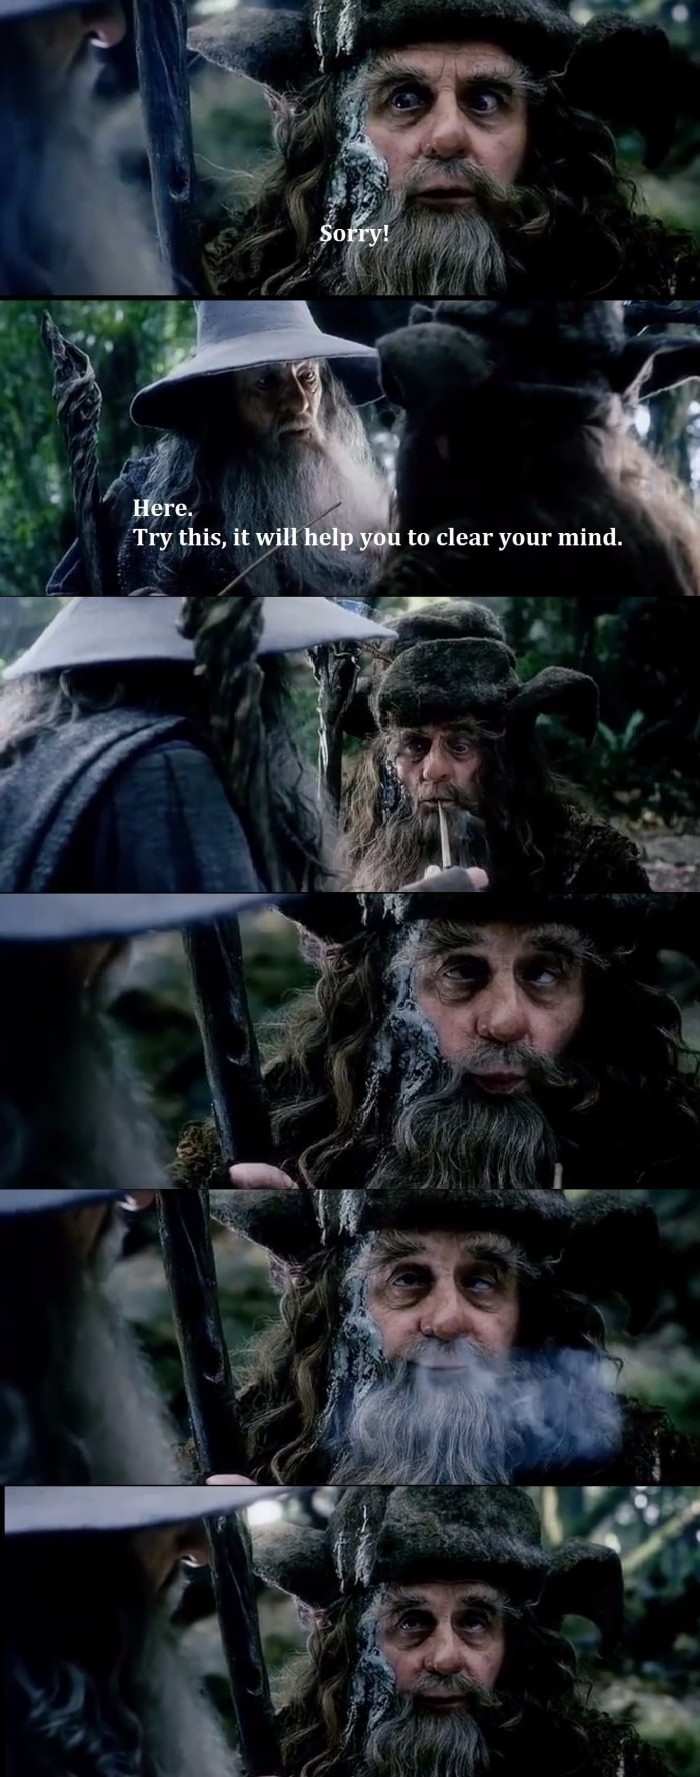 Good stuff of Middle-Earth